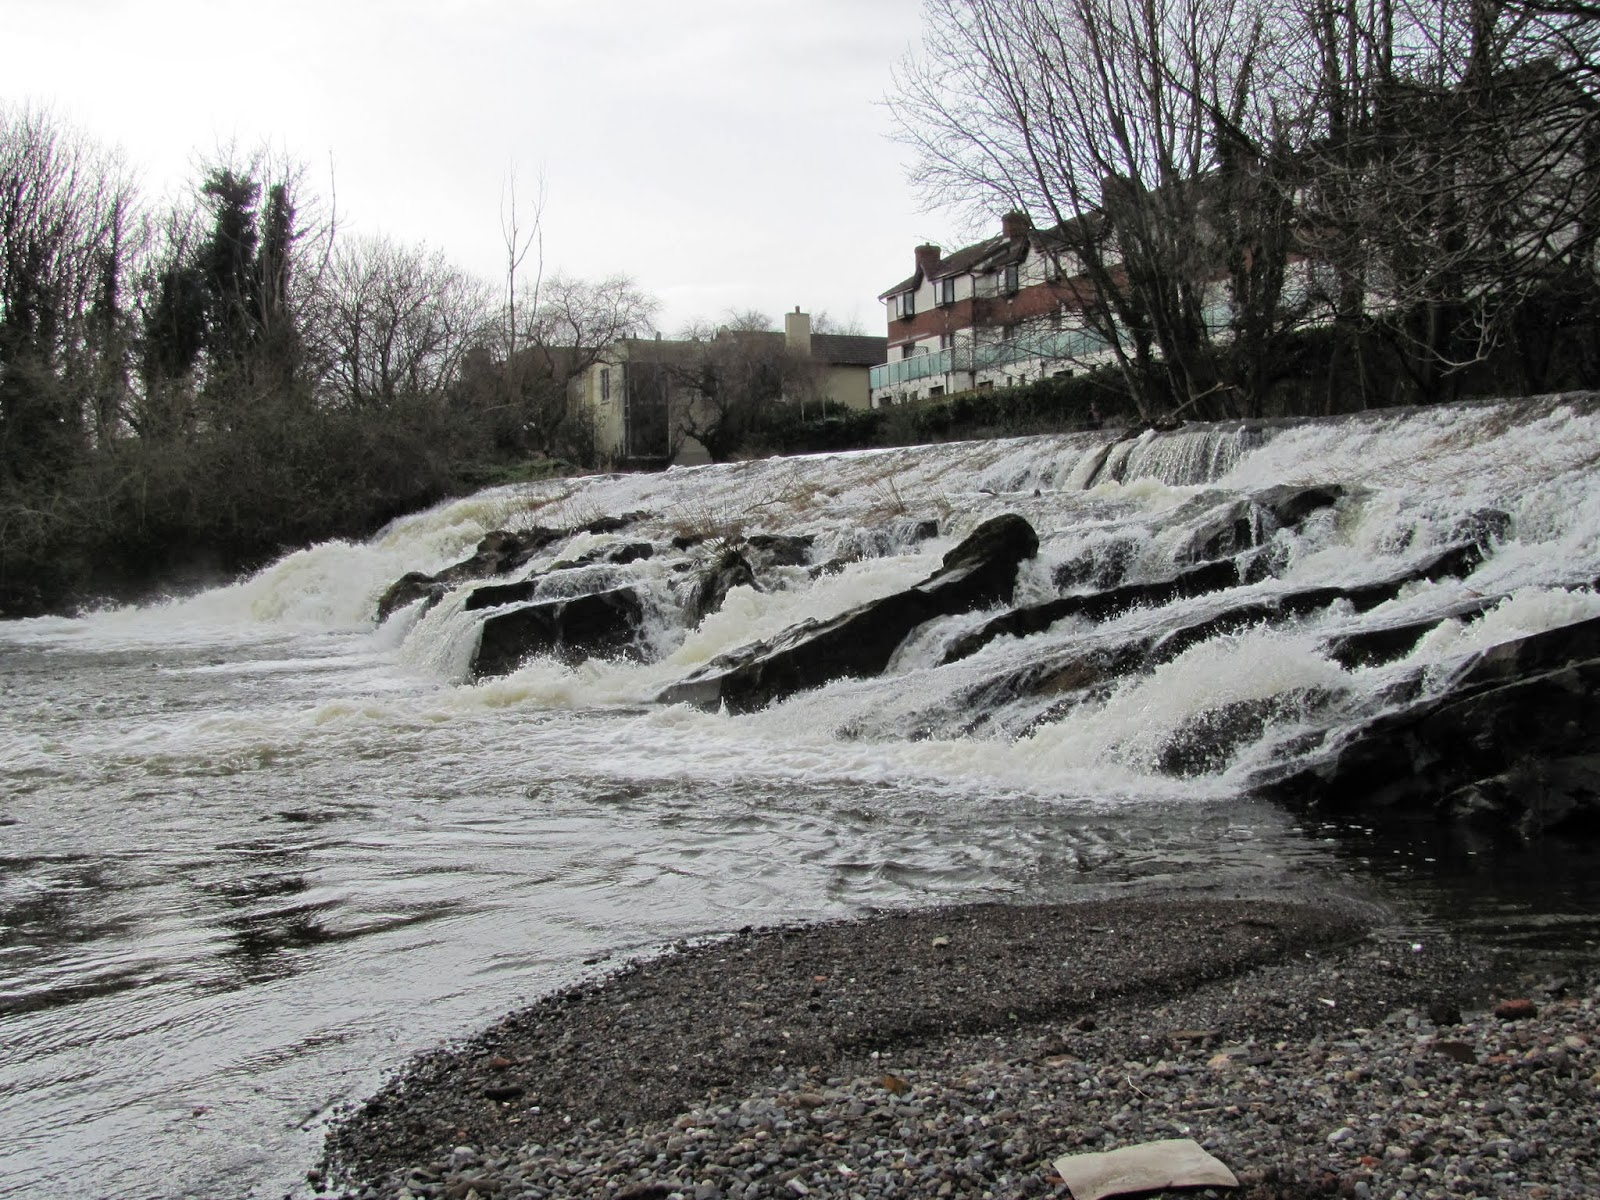 River Dodder is a Little High in Dublin